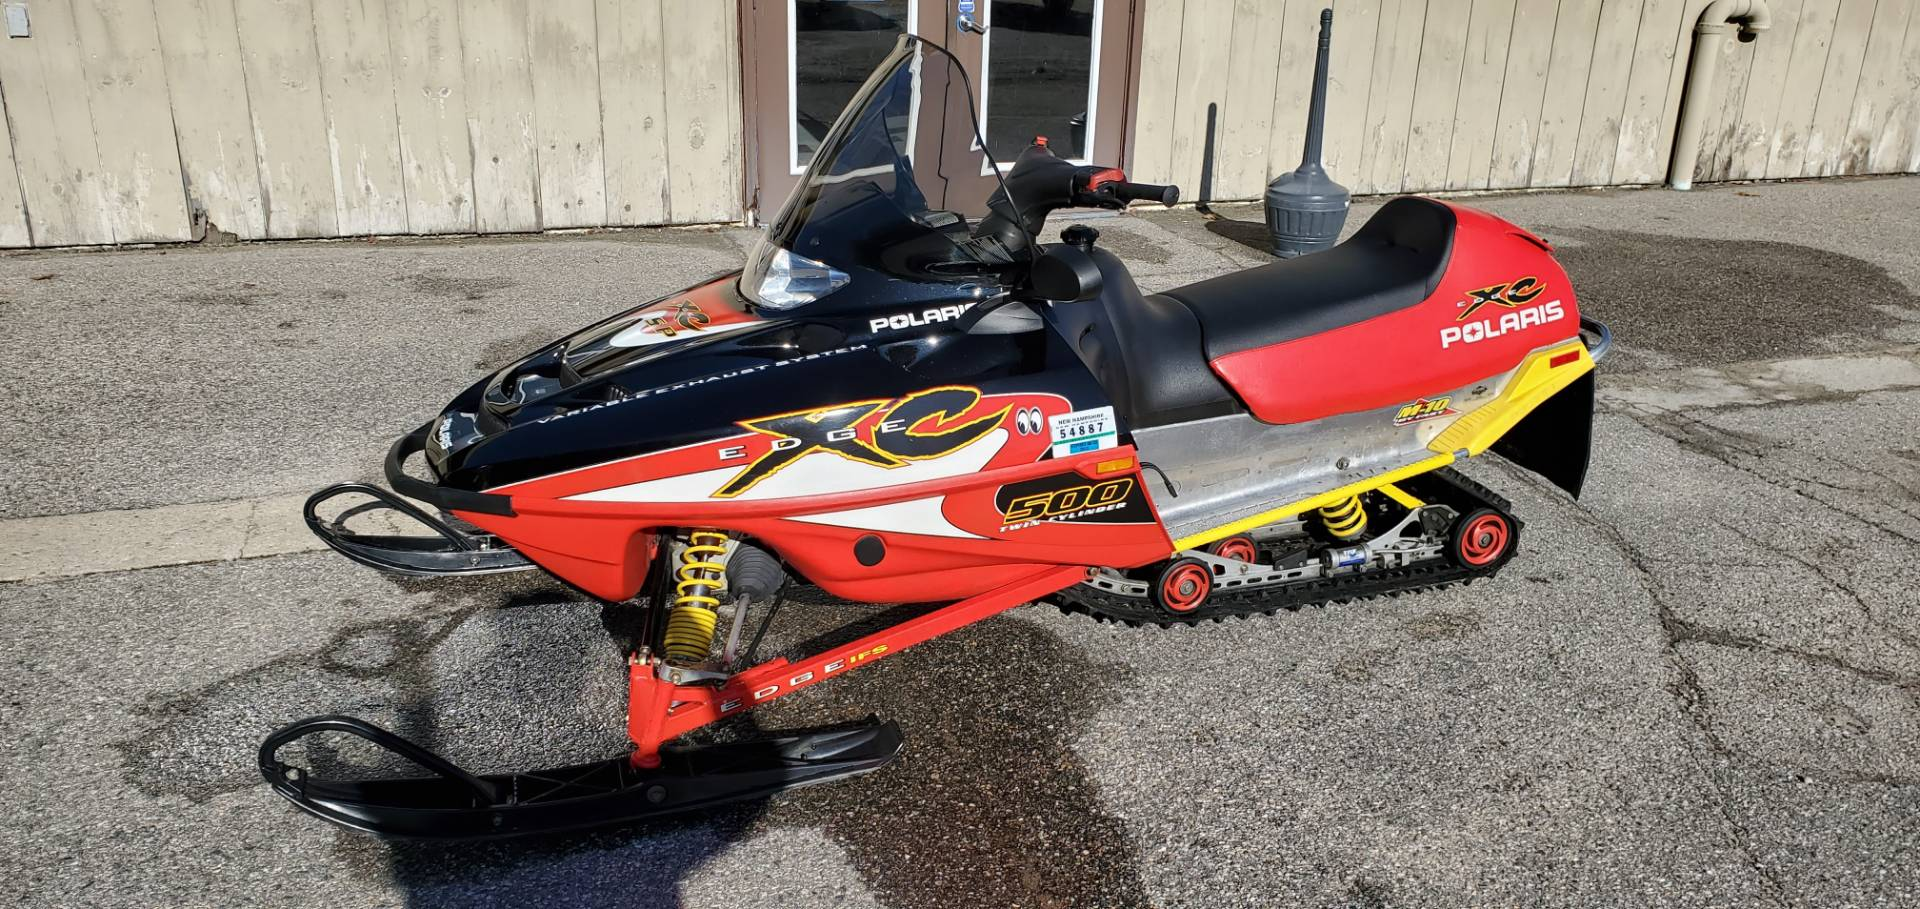 2003 Polaris 500 XC SP in Tamworth, New Hampshire - Photo 1